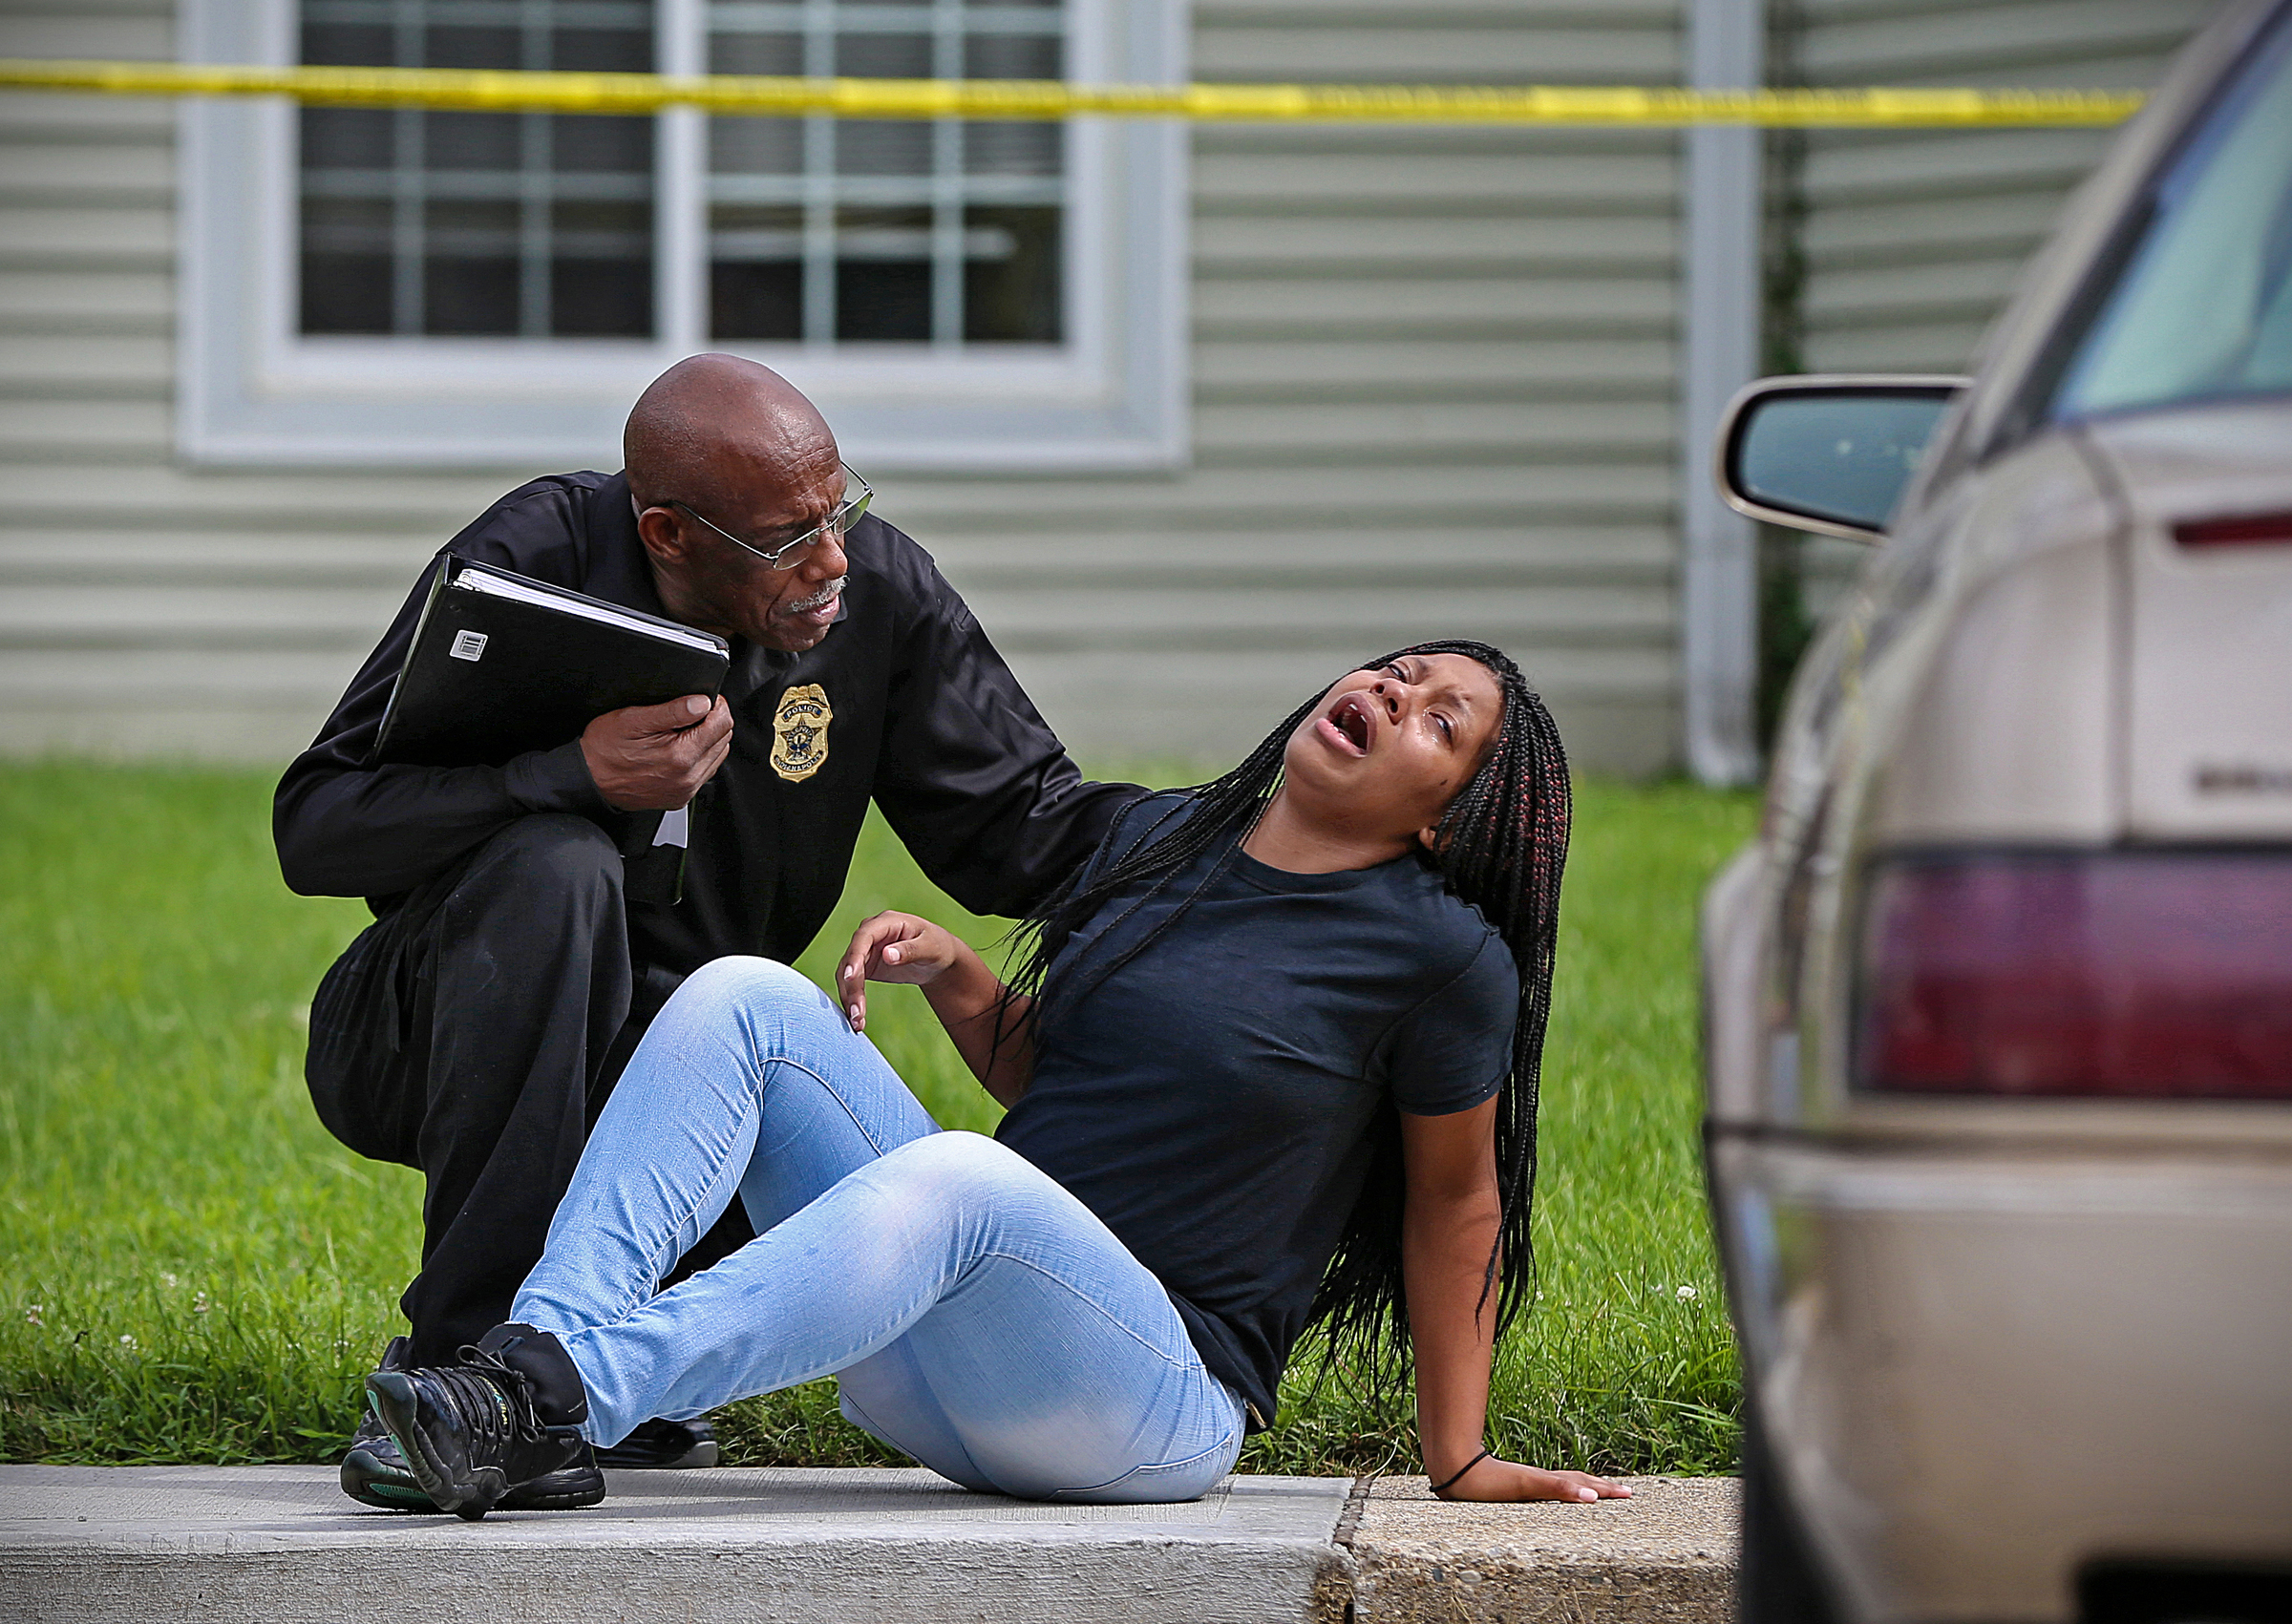 """A loved one reacts at the scene of a triple murder at an apartment on Admar Court near 46th Street and Binford Boulevard, Indianapolis, July 22, 2016. An infant girl was found sleeping in the apartment, unharmed, though her parents Cameron Baker, Takara Coleman, and an upstairs neighbor, Lisa Woods, were found dead. """"That's my best friend,"""" the girl shouted before dropping to the side walk."""